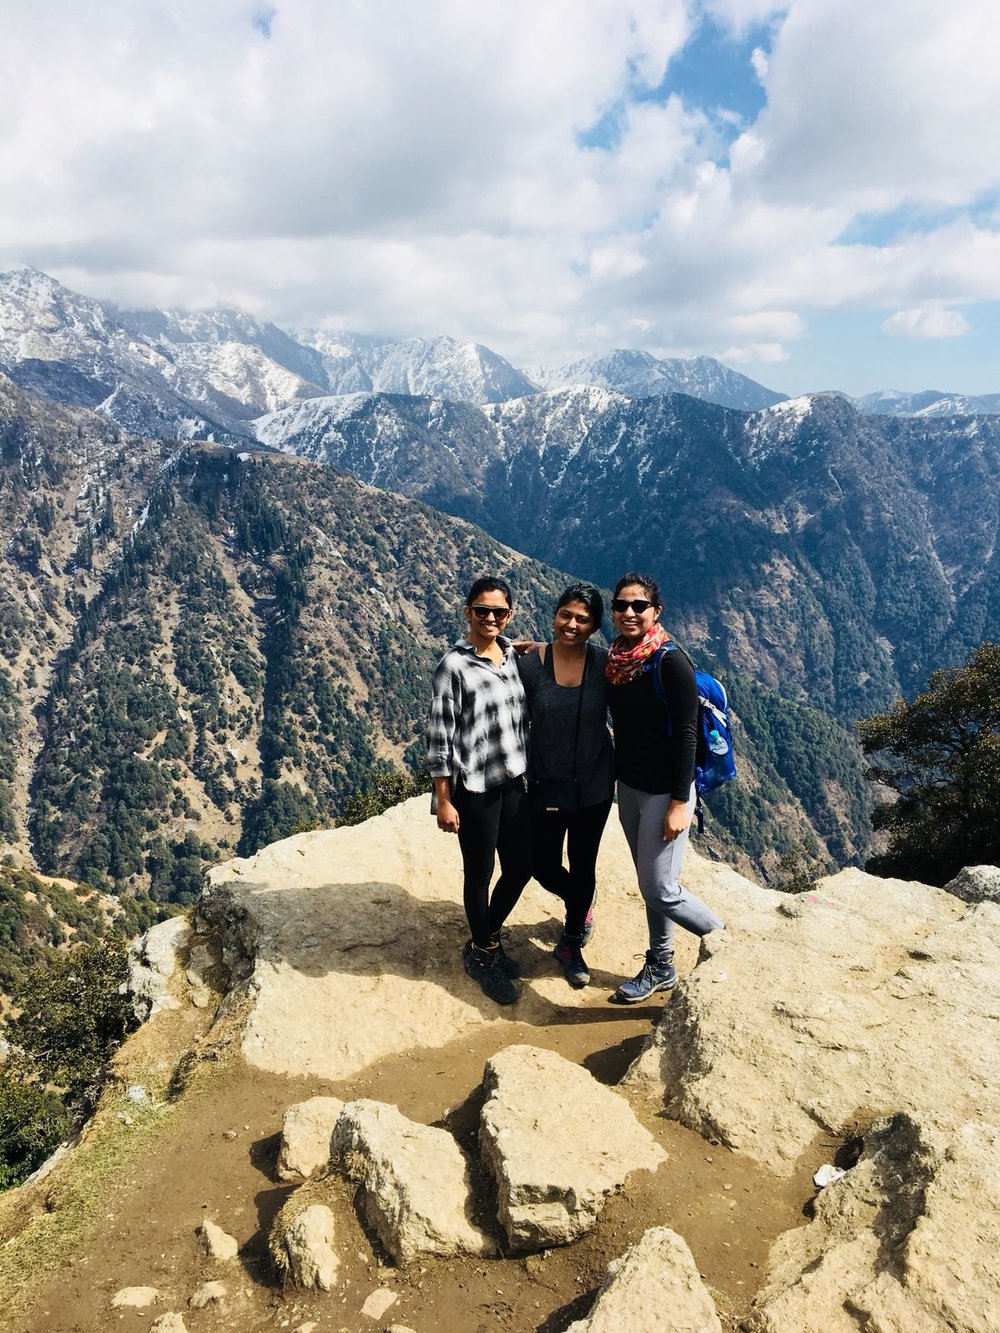 Jean, Agah and Febah loving the mountains of India!